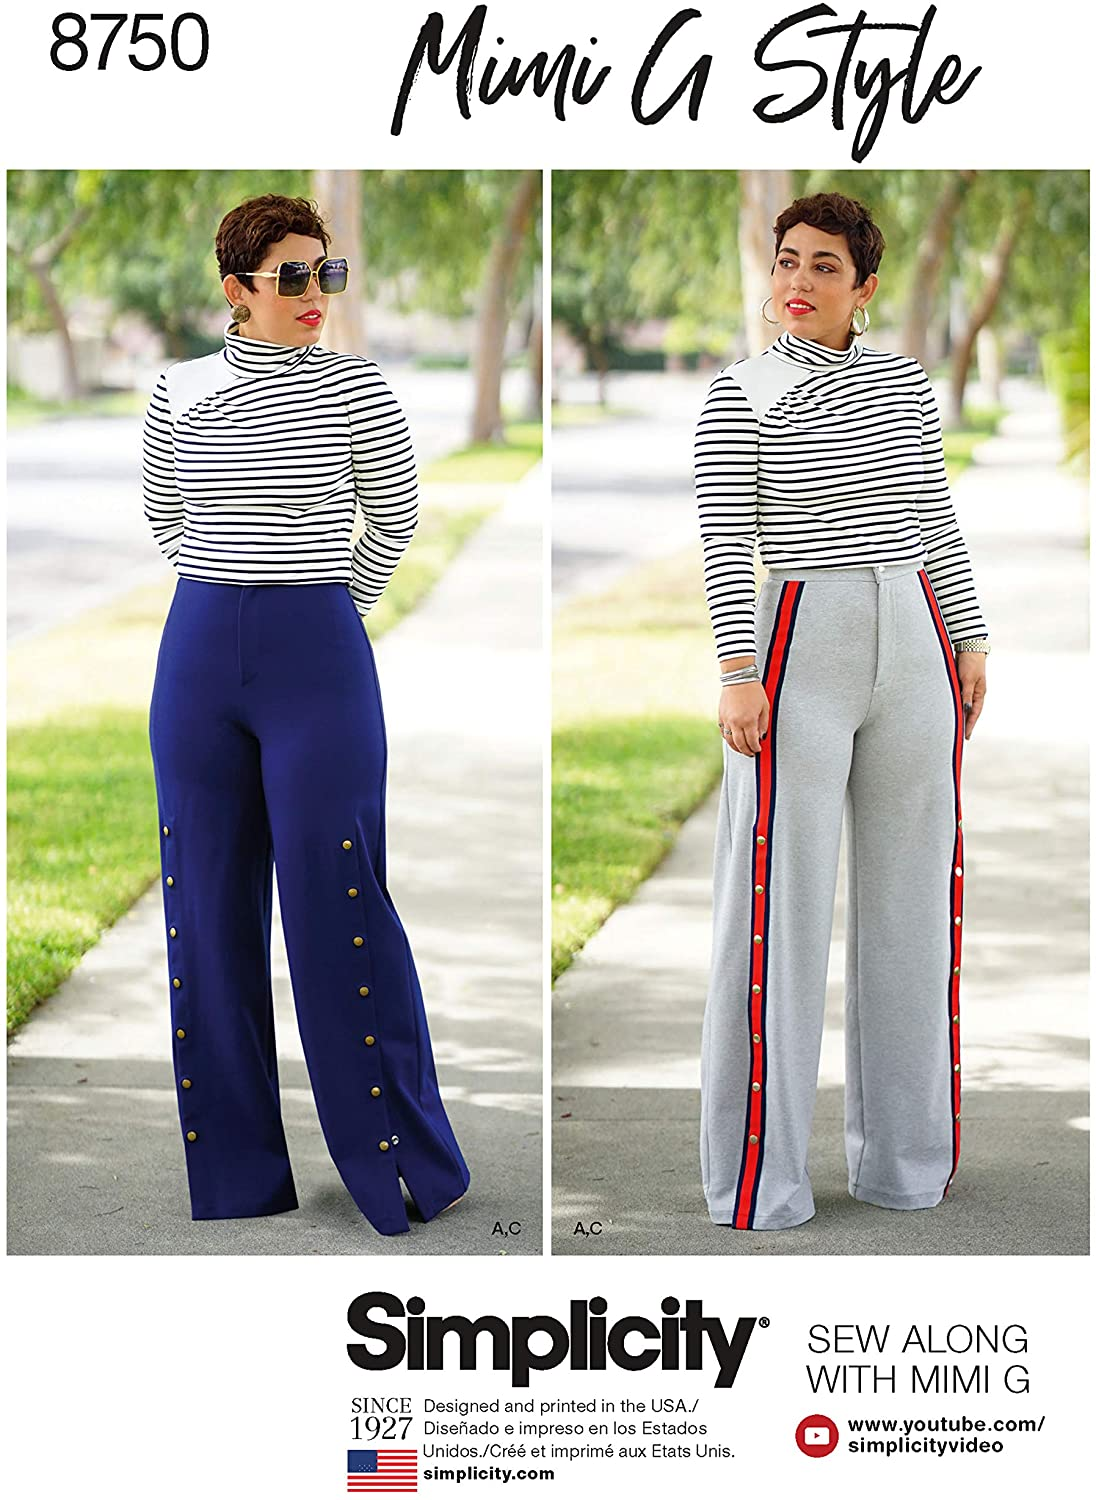 Simplicity Women's Shirts and Wide Leg Pants Sewing Patterns by Mimi G Style, Sizes 6-14